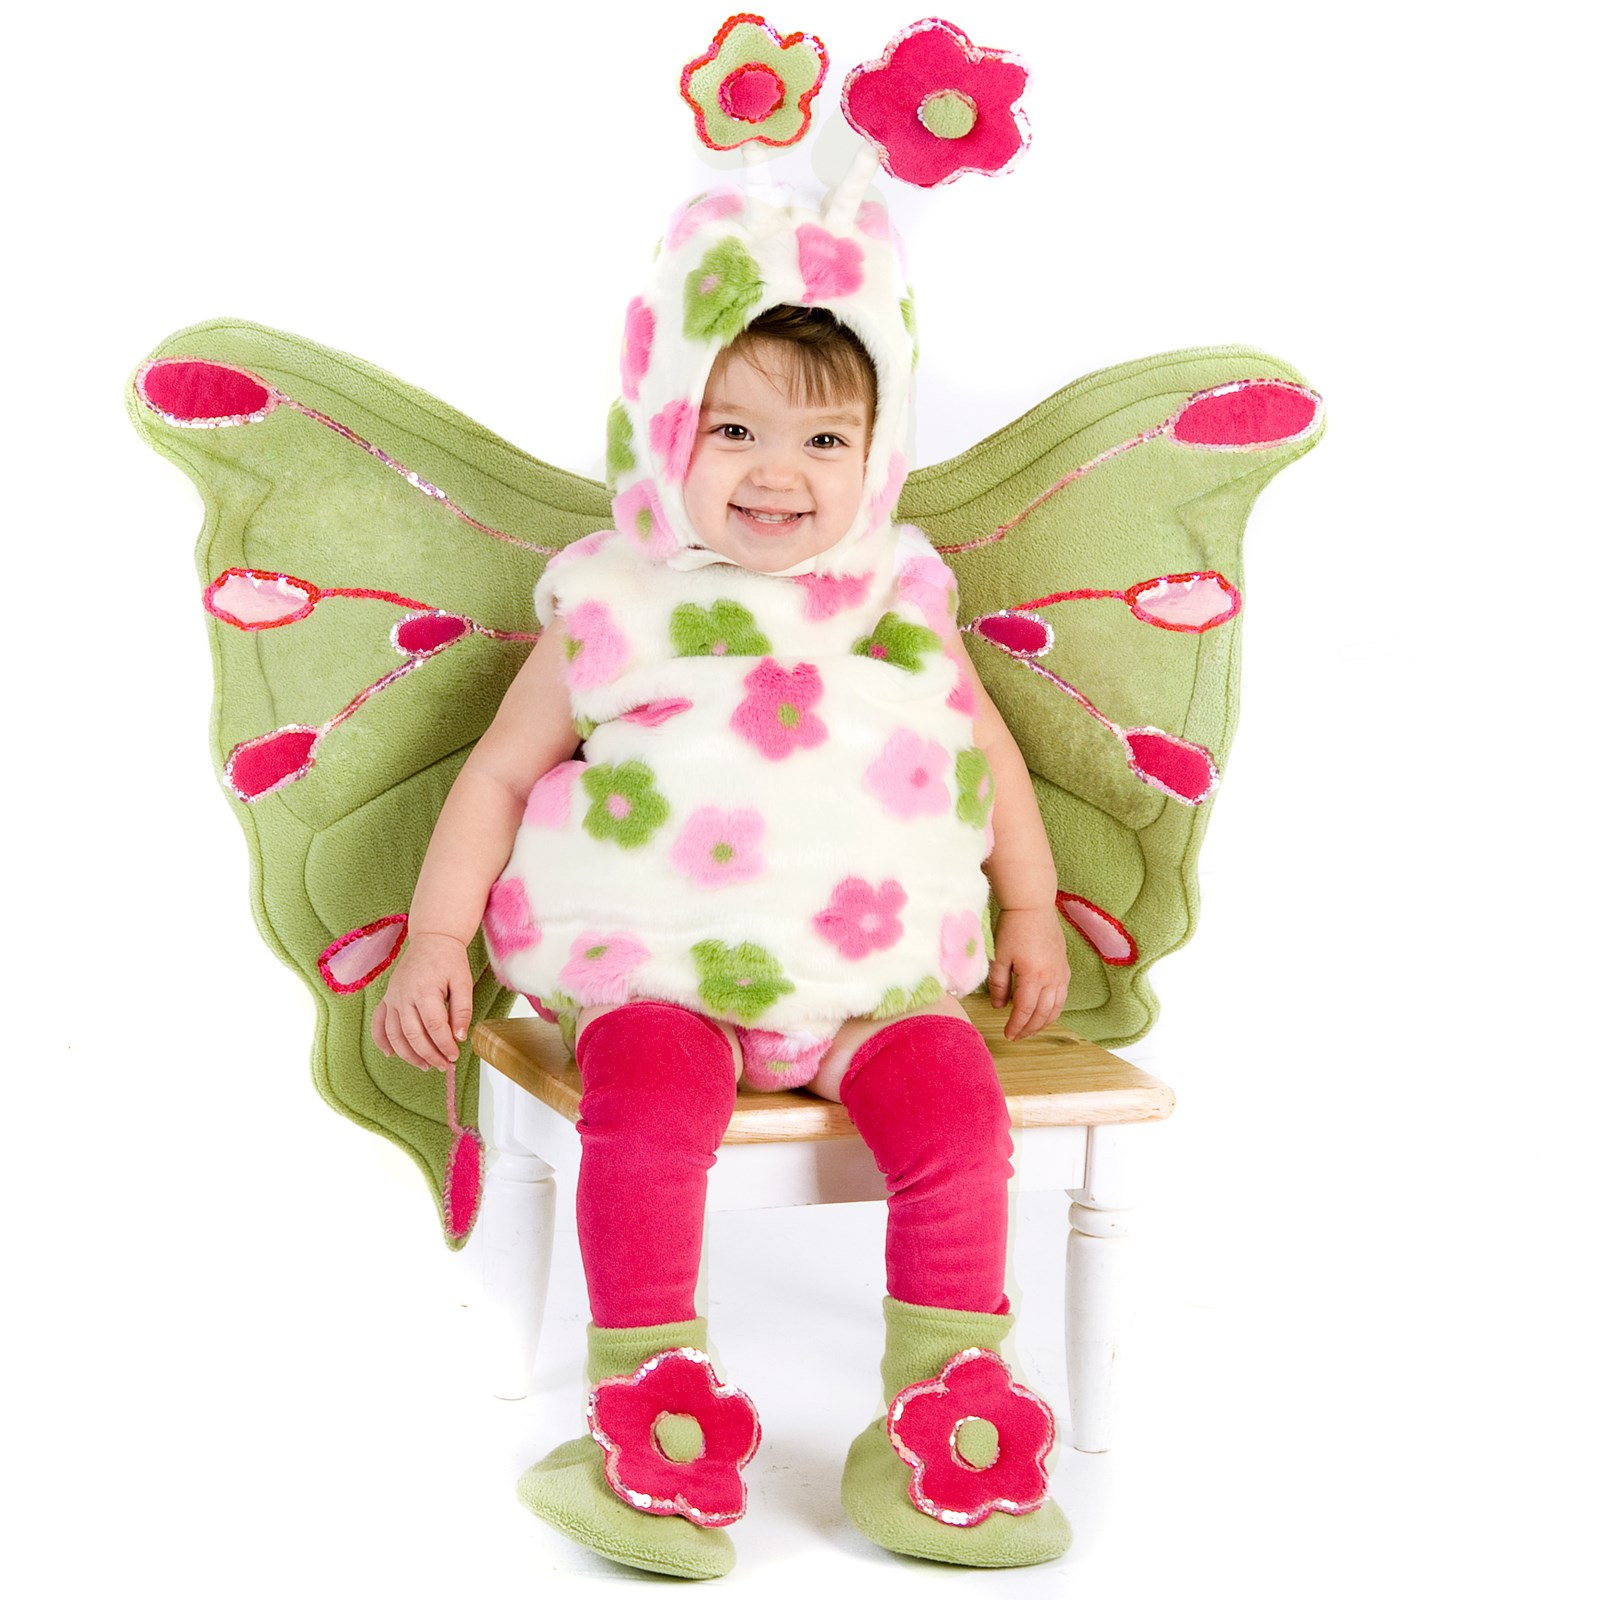 Butterfly Infant / Toddler Costume 18 Months/2T